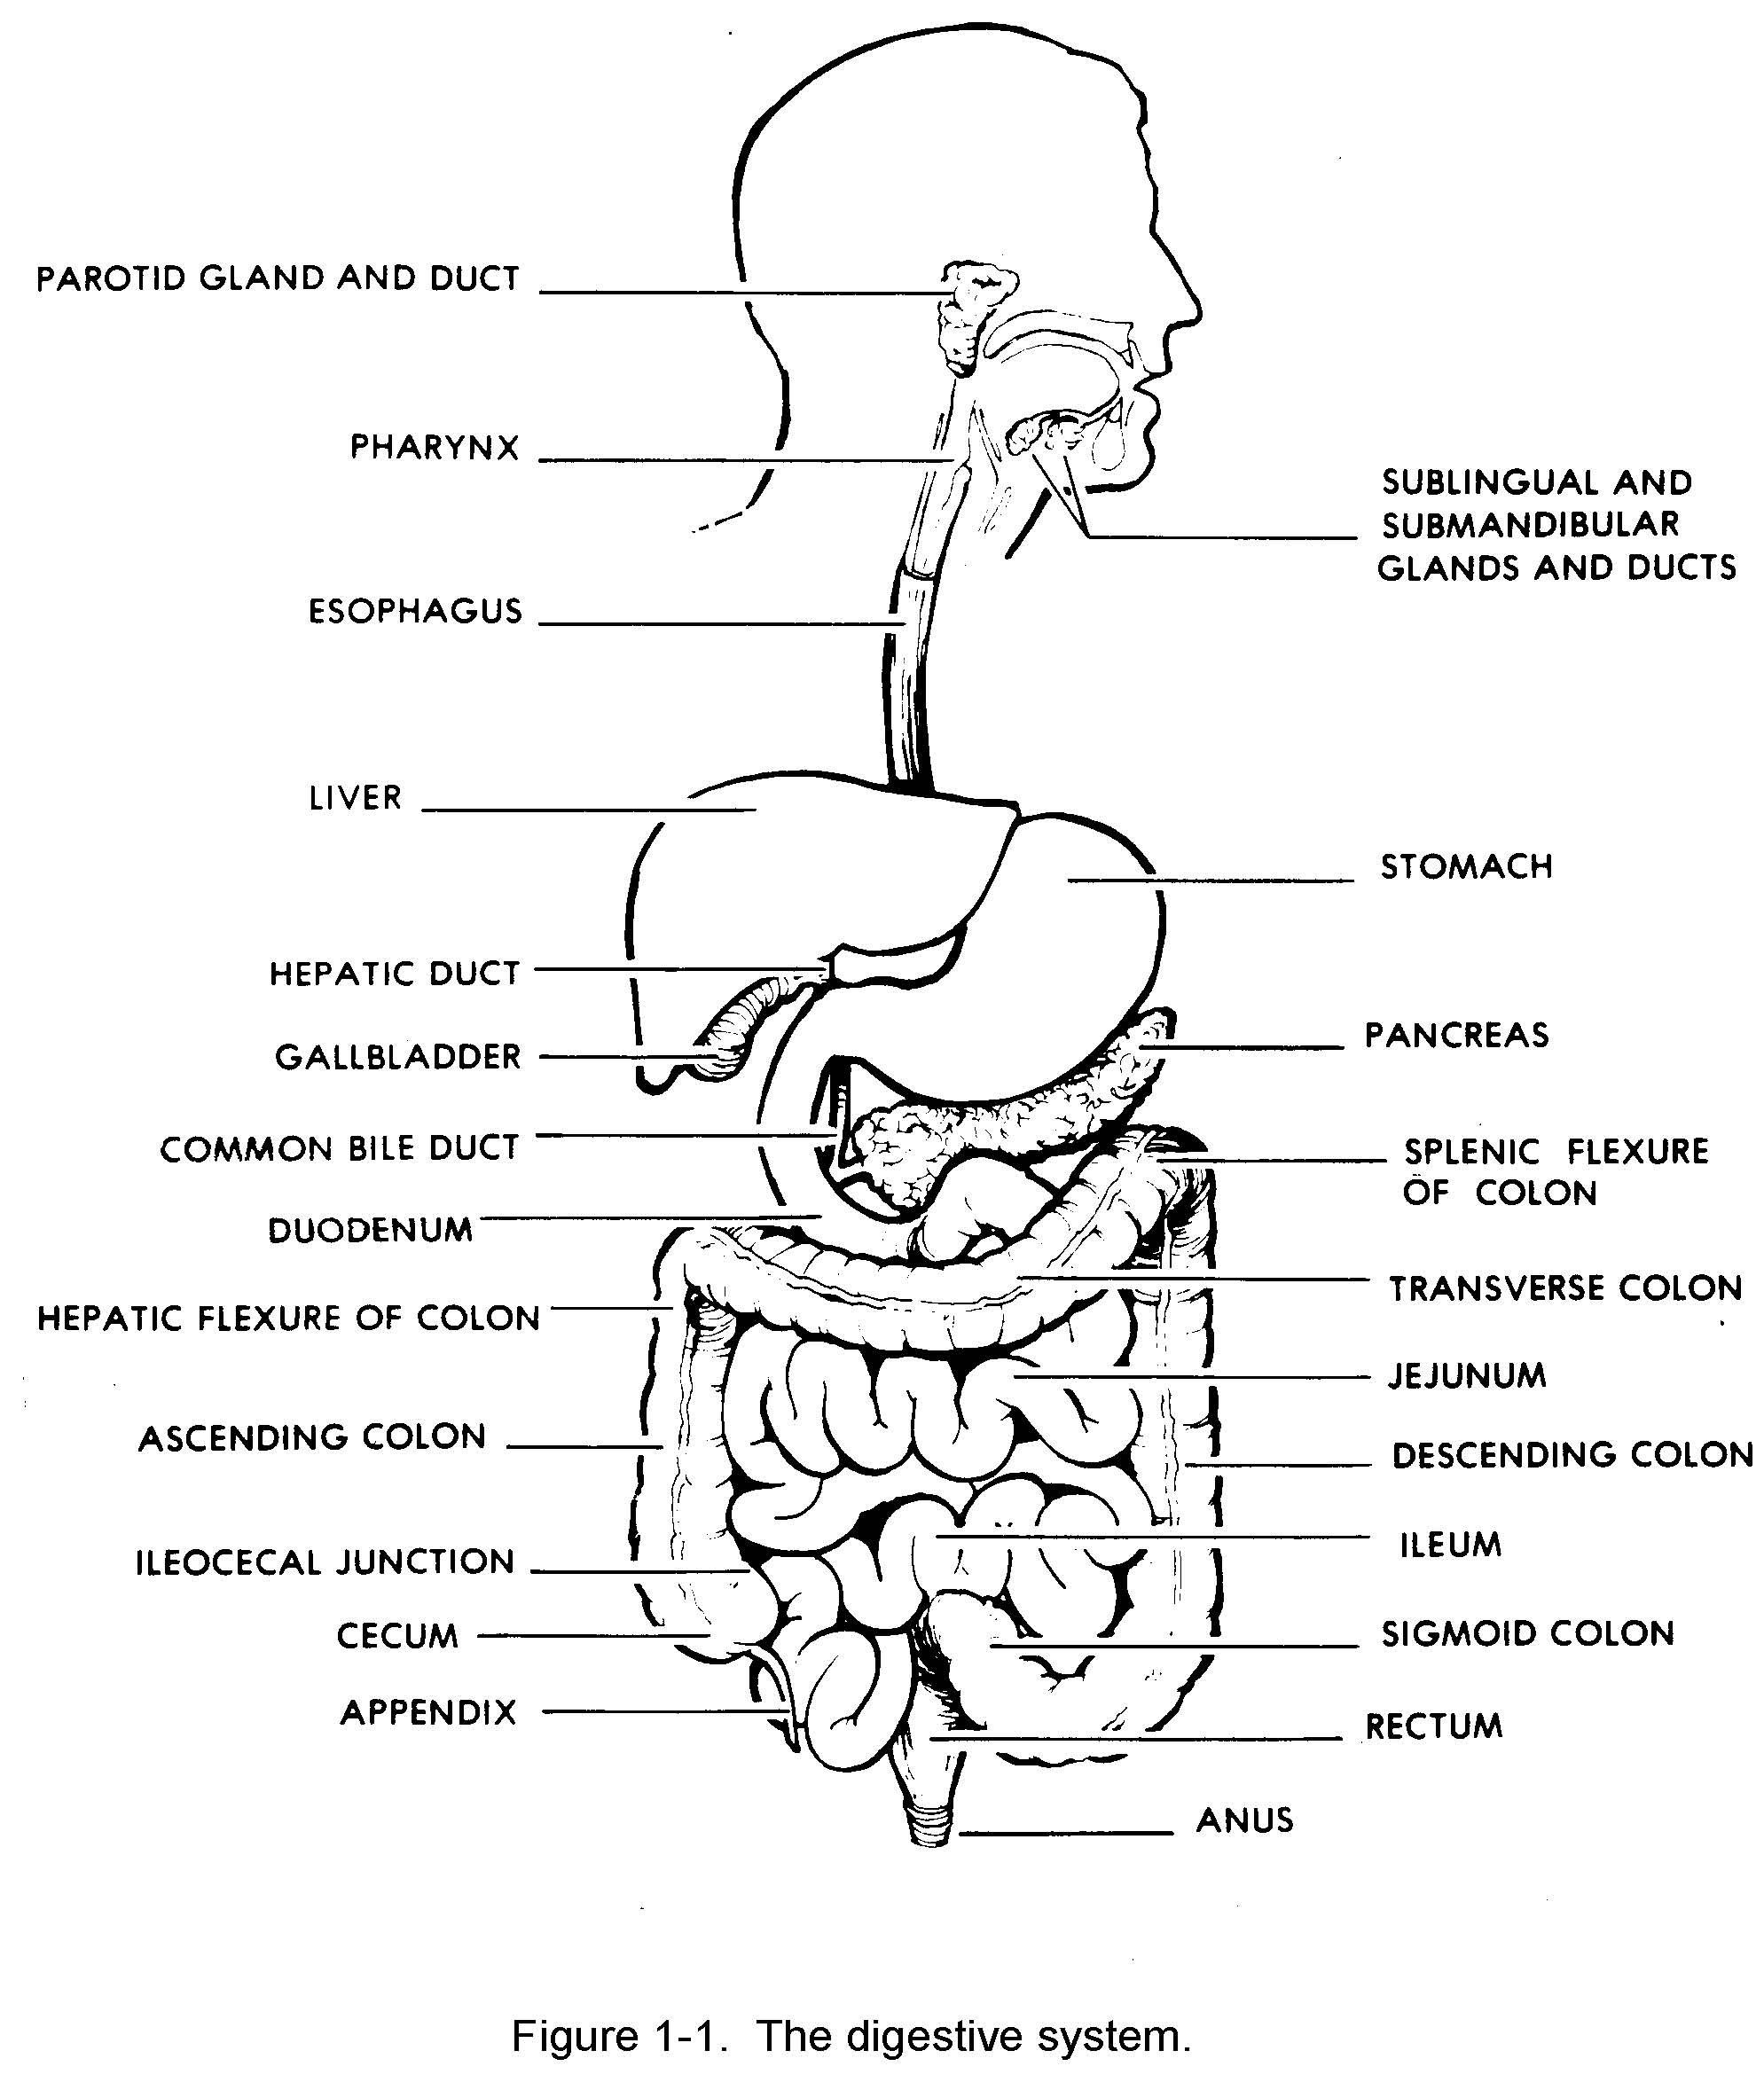 Digestive System Diagram To Label Digestive System